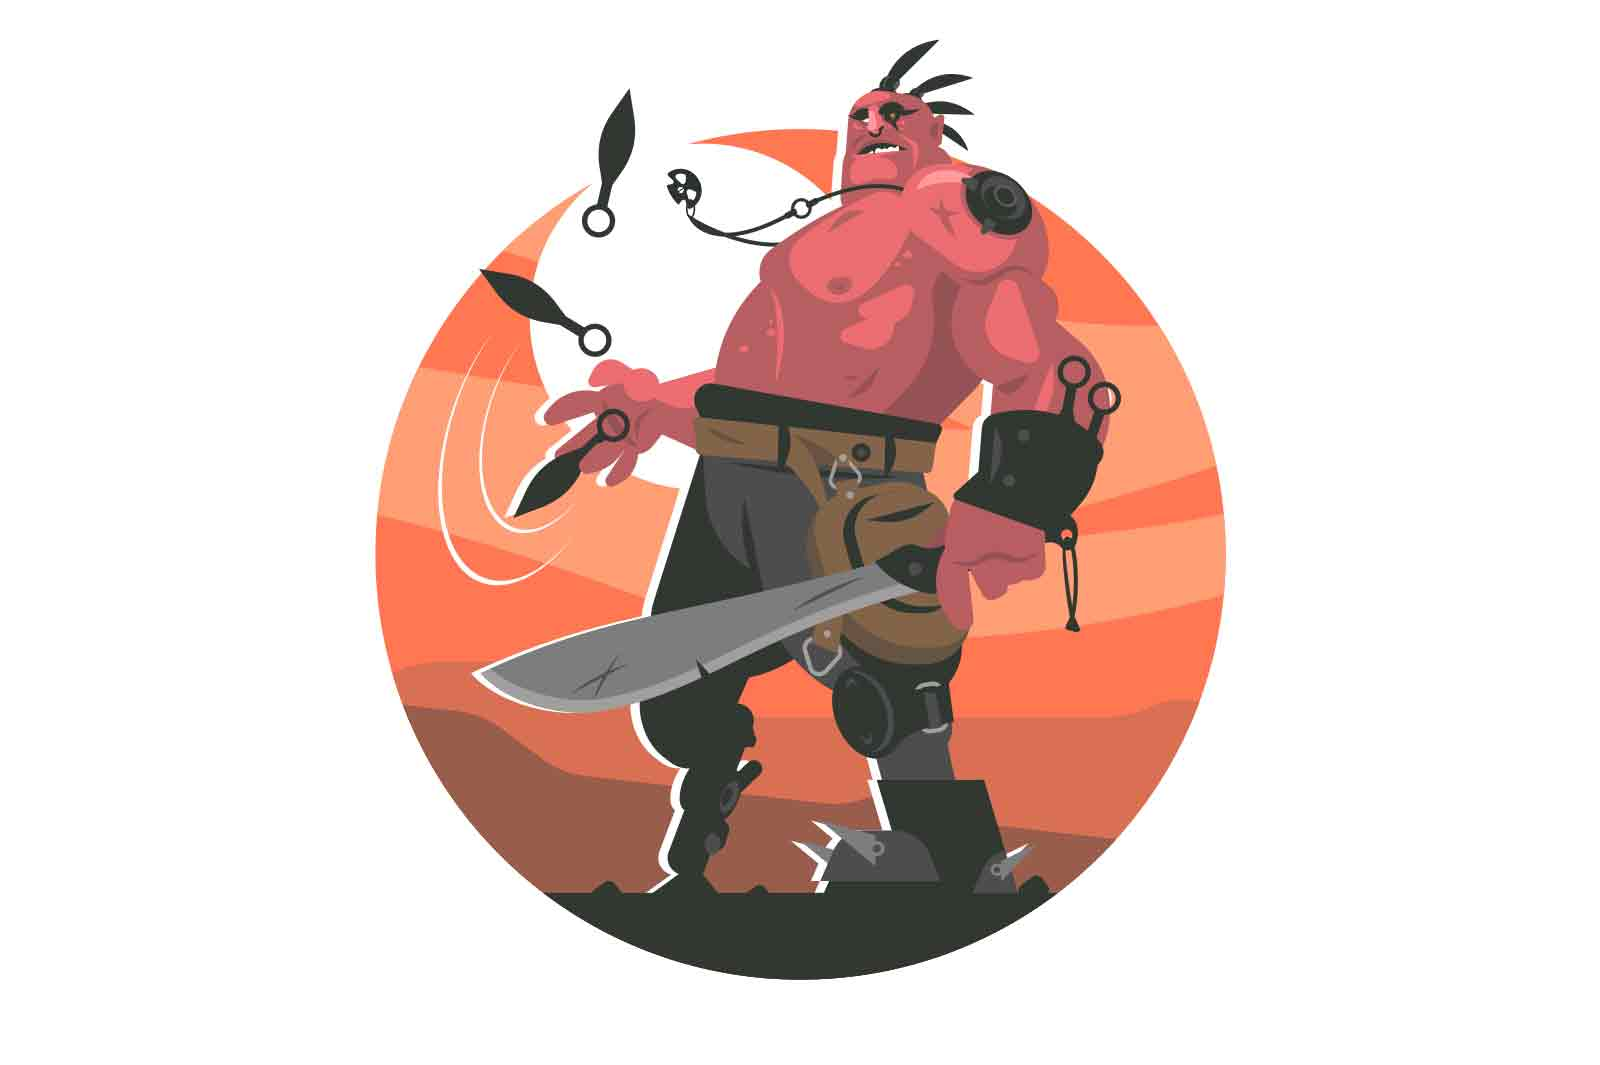 Сharacter of a thug with a machete vector illustration.